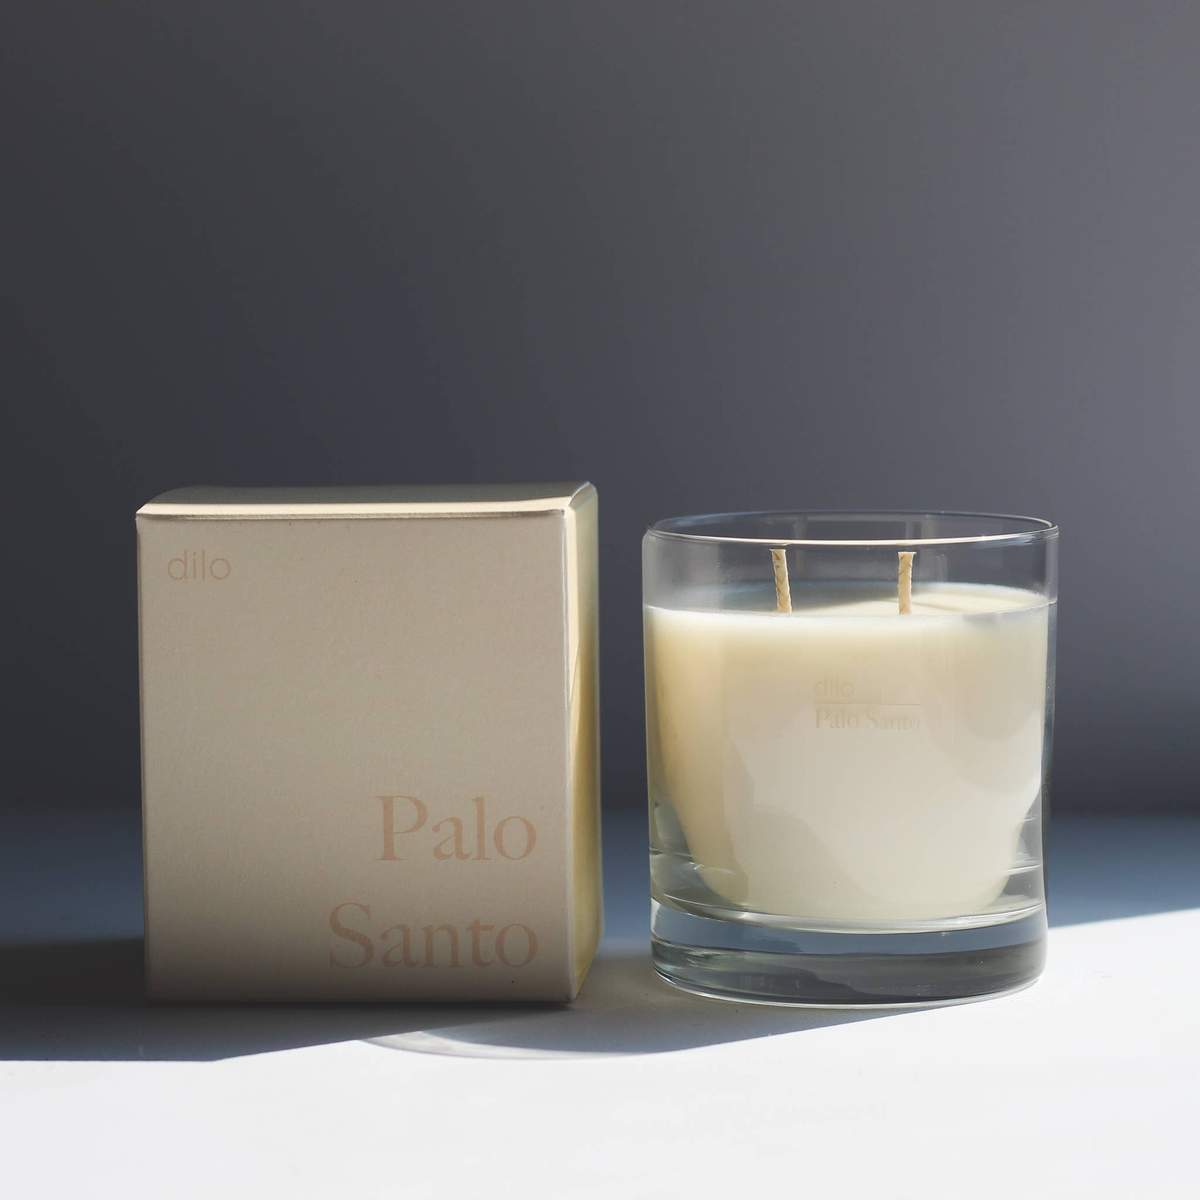 Elsewhere Candles by Dilo Home